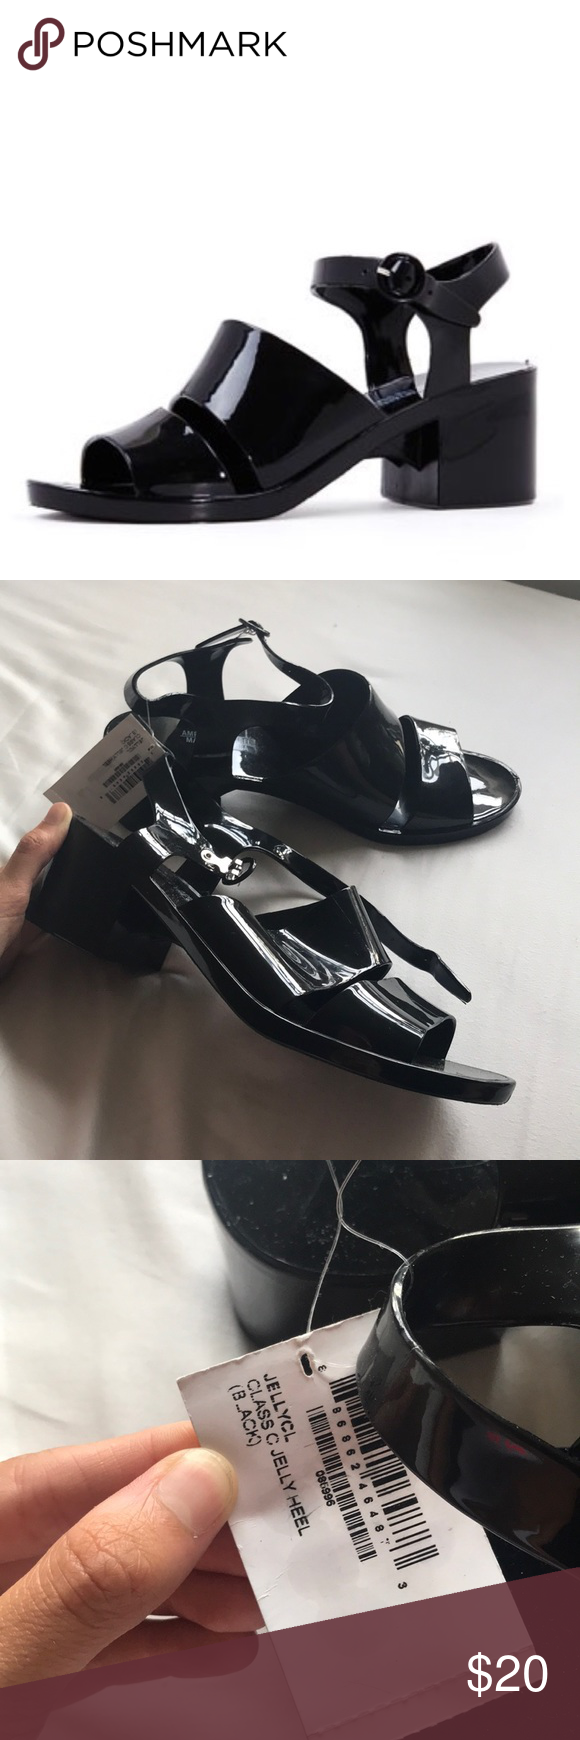 6b60b93d4139 American Apparel Black Classic Jelly Heel These awesome jelly heels are a  classic addition for any closet. Size 11. Tags still on.